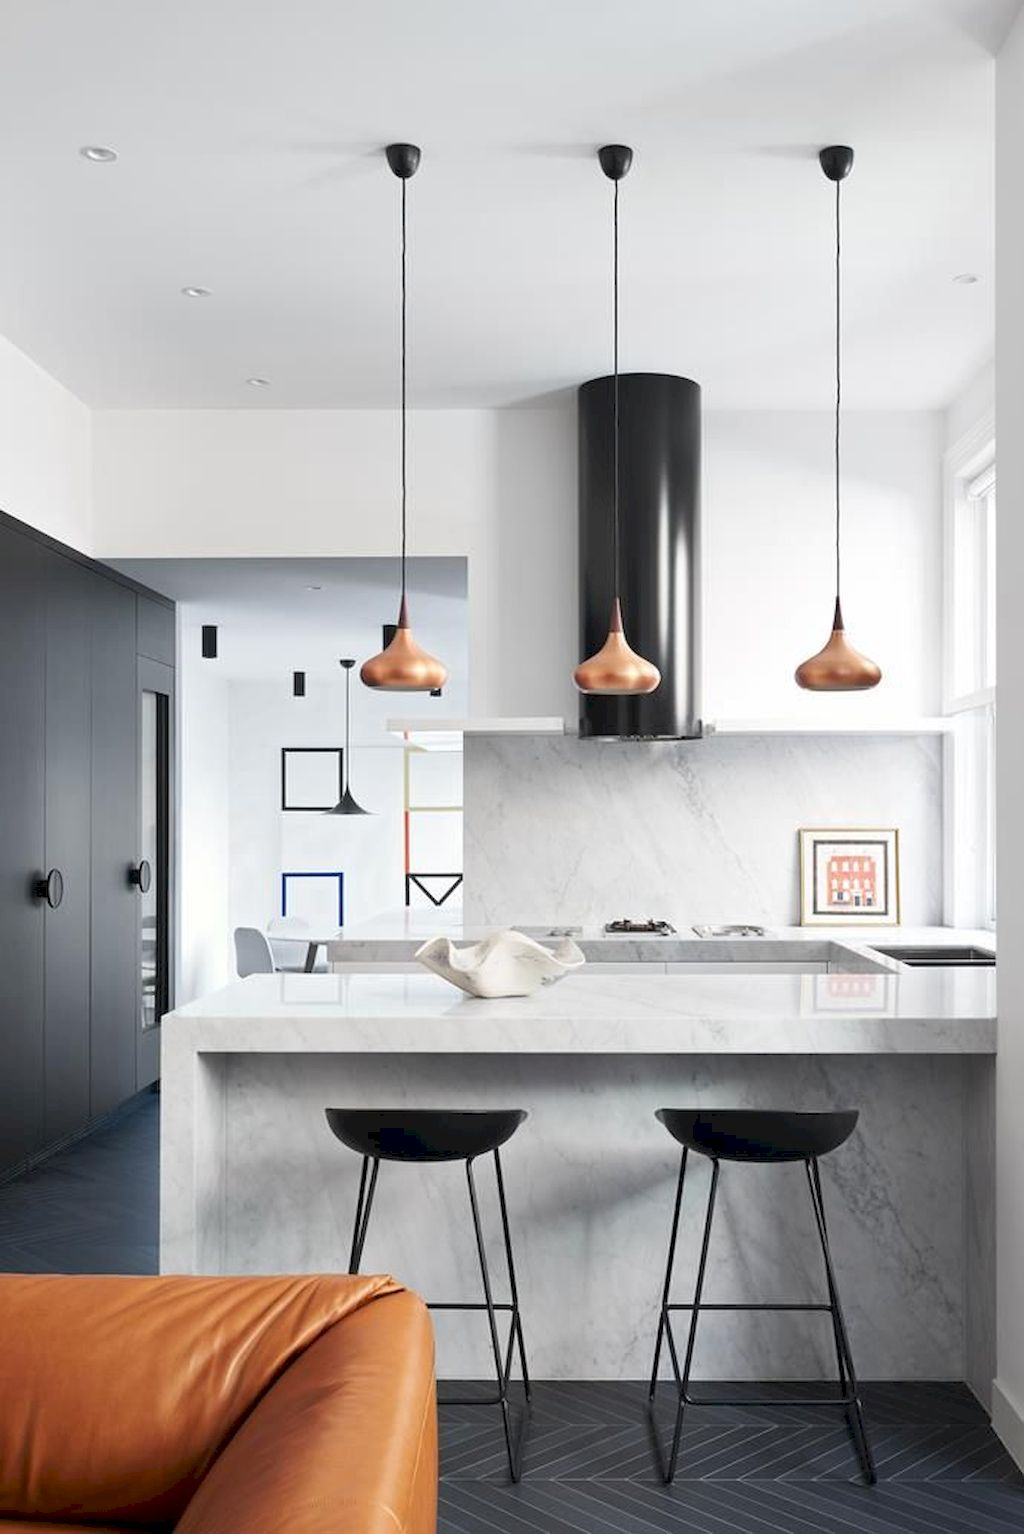 Decorative Kitchen Pendant Design with Modern and Classic Concept Part 1